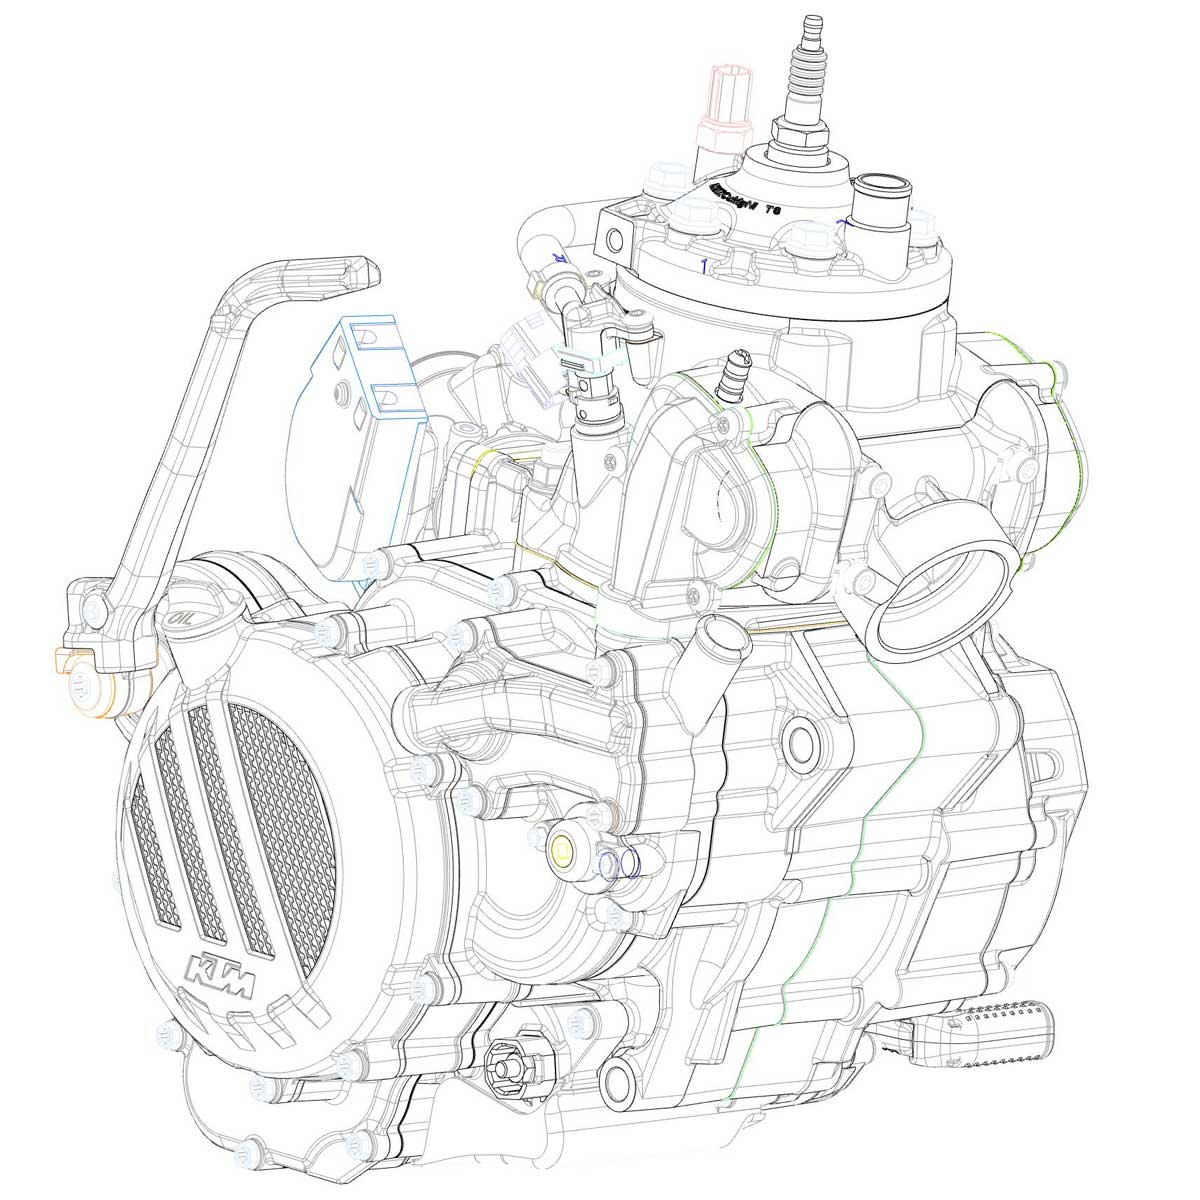 Ktm Engine Diagram Exc Wiring Diagrams Announces New Fuel Injected Stroke Enduro Bikes Adv Pulse Of Ktms Newly Developed 2